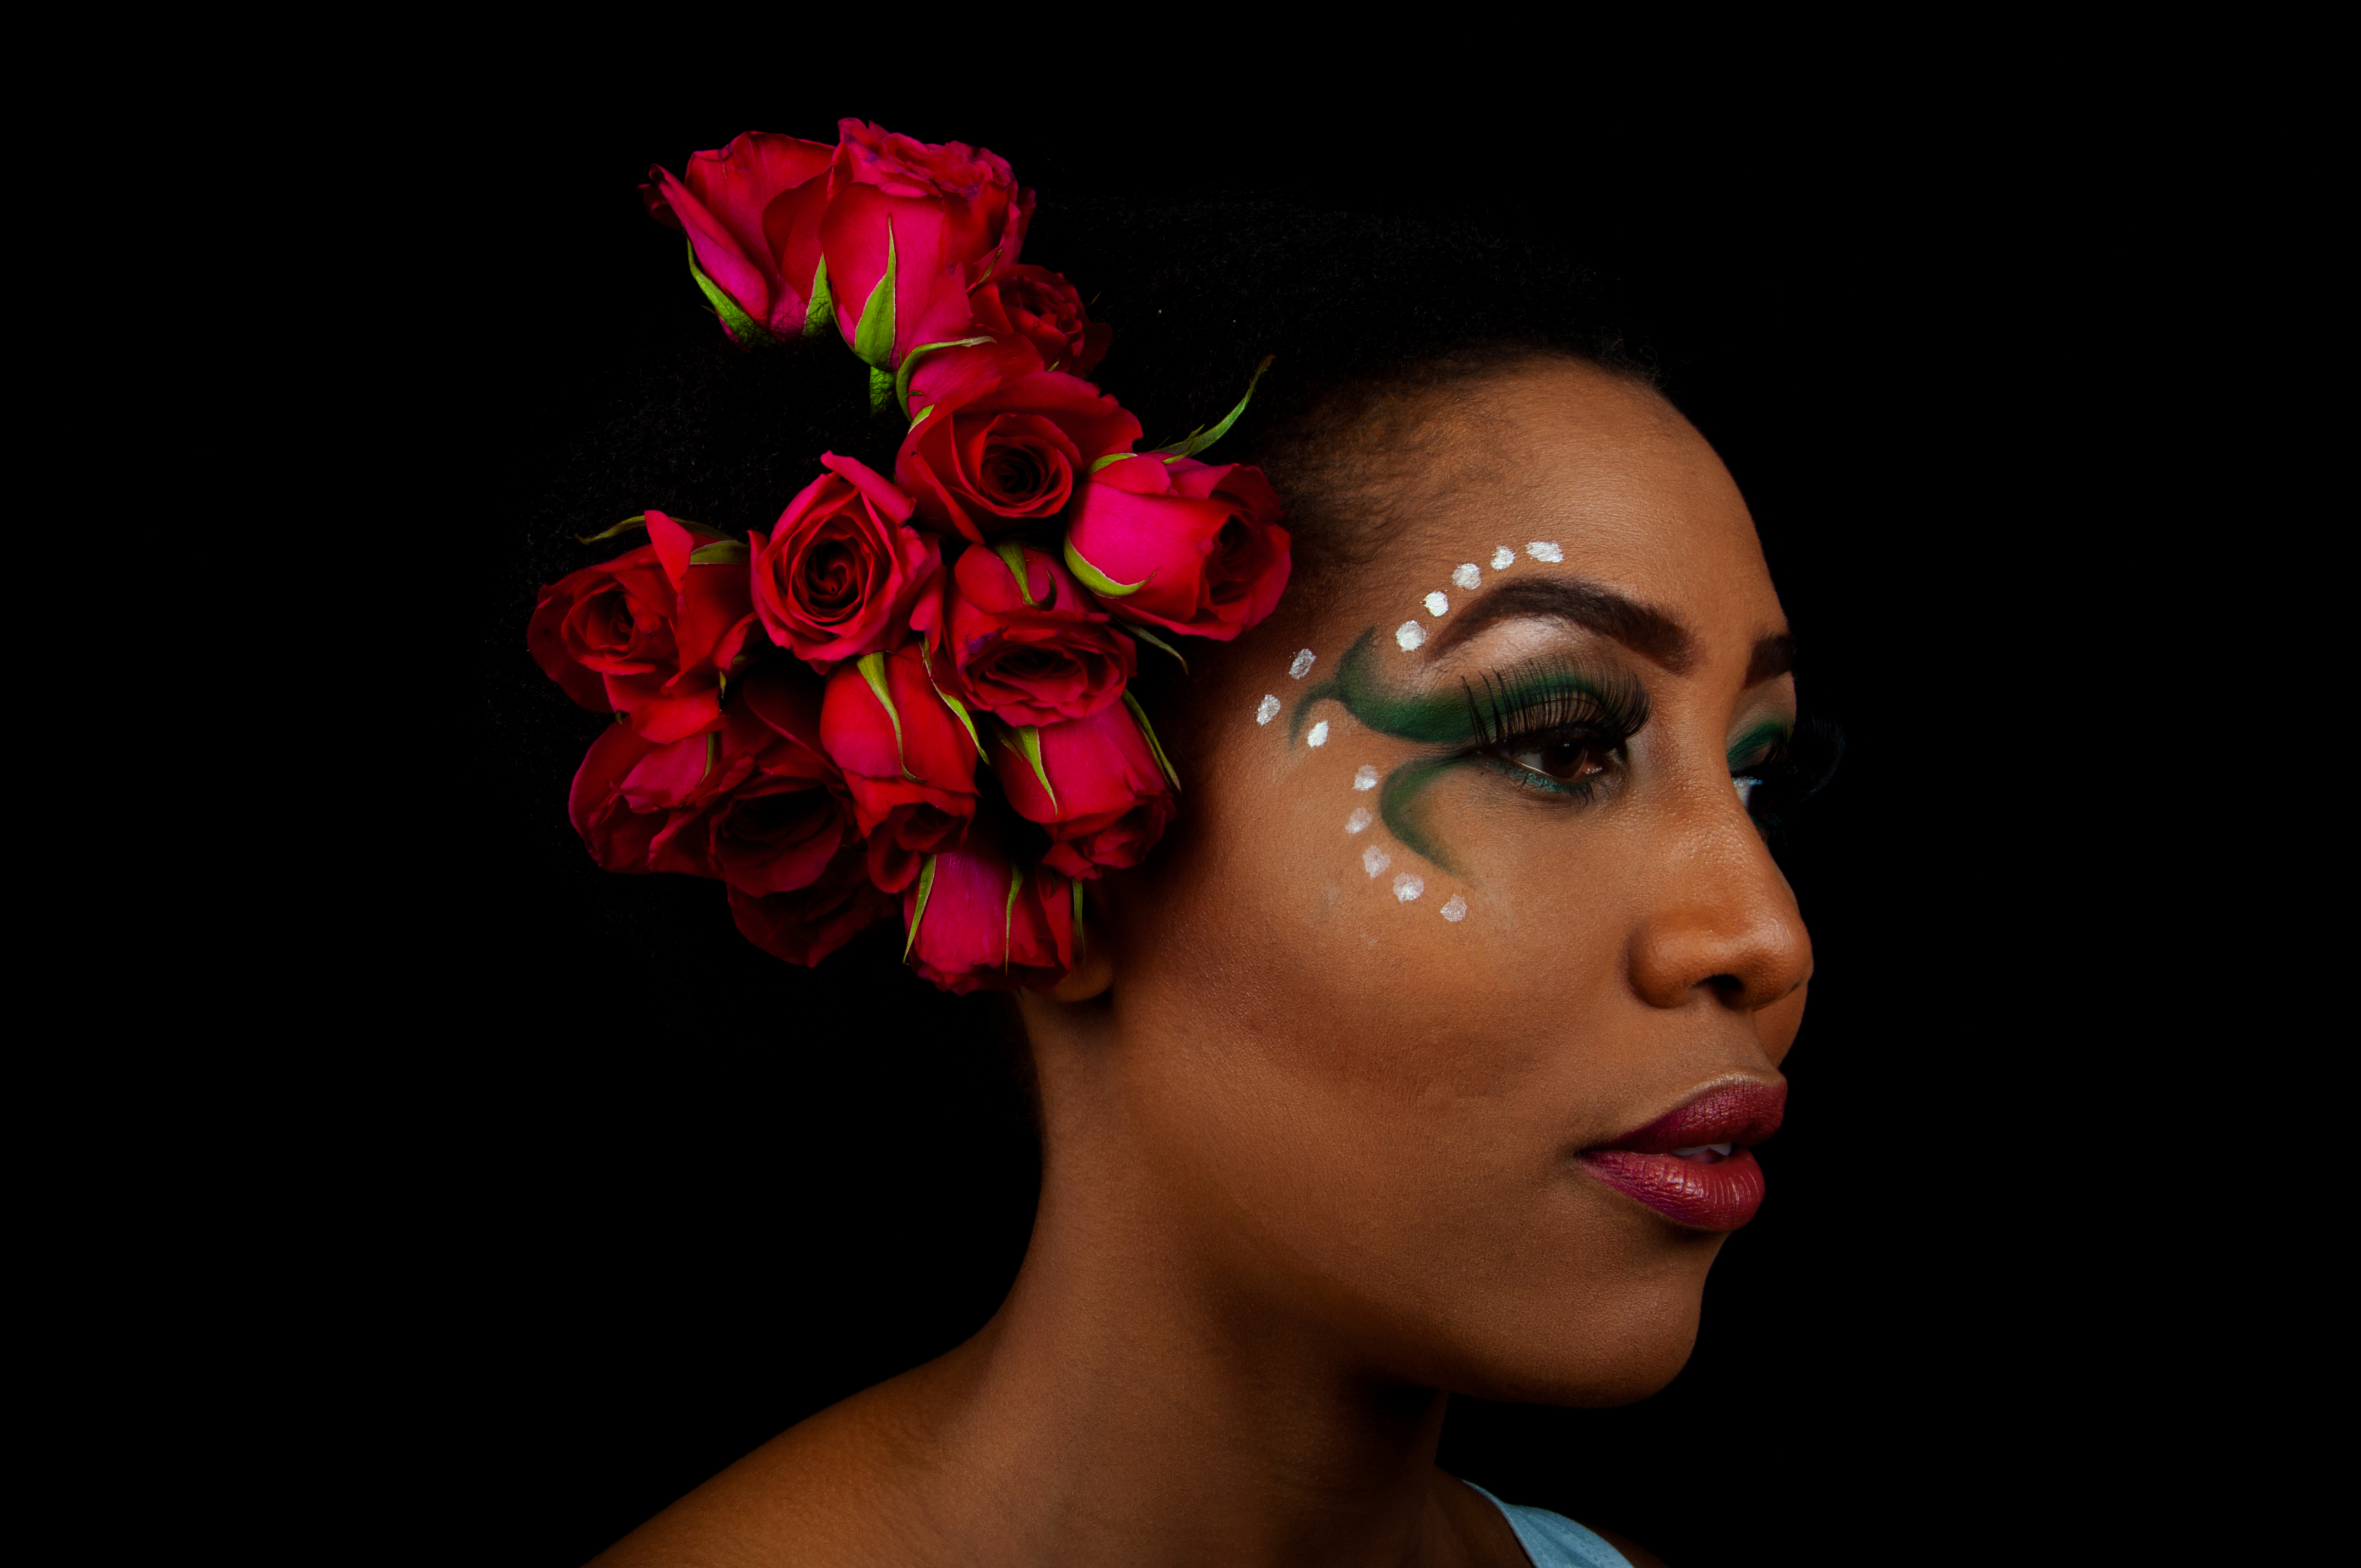 Close-Up Of Woman Wearing Roses With Face Paint Over Black Background